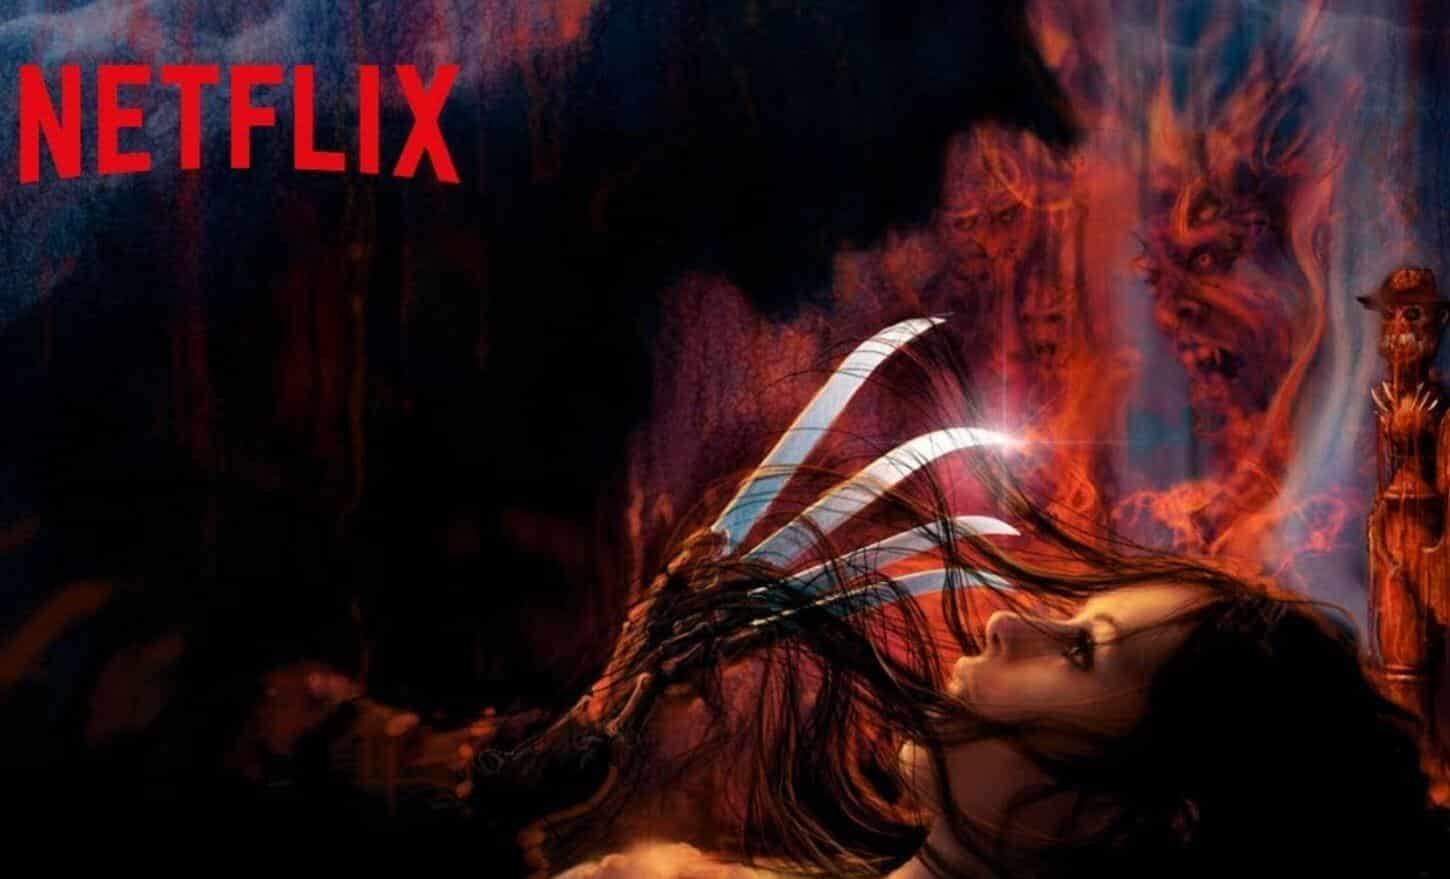 a nightmare on elm street netflix series